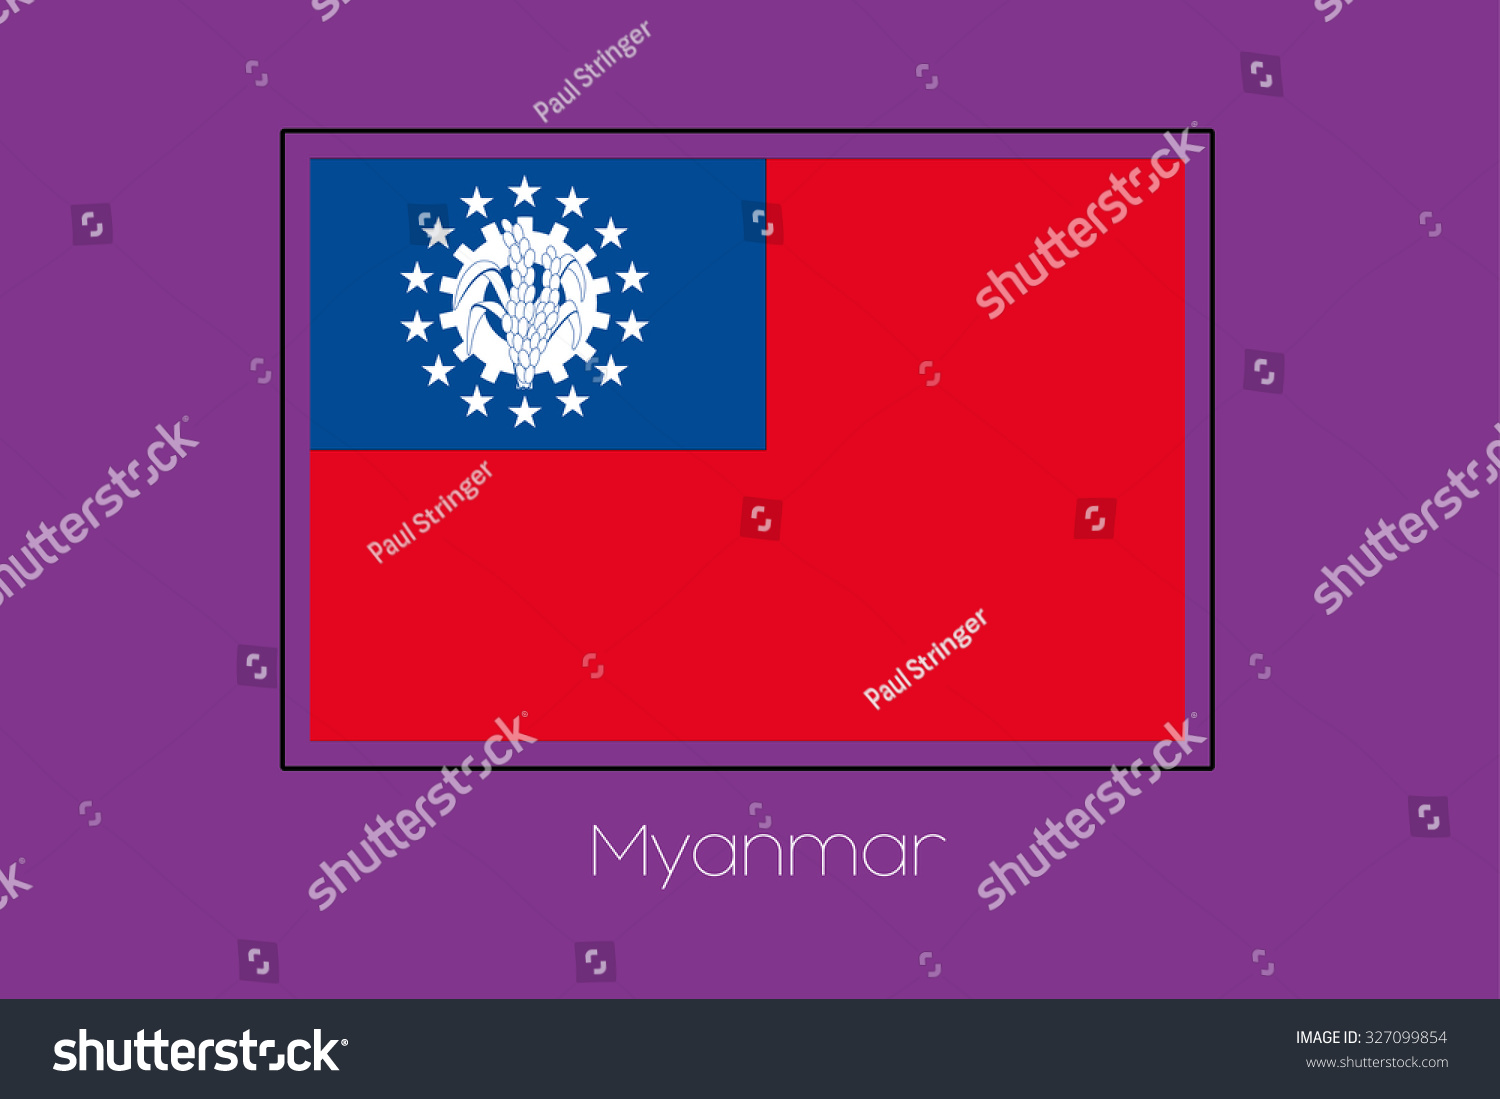 A Flag Illustration on a Purple Background of Myanmar